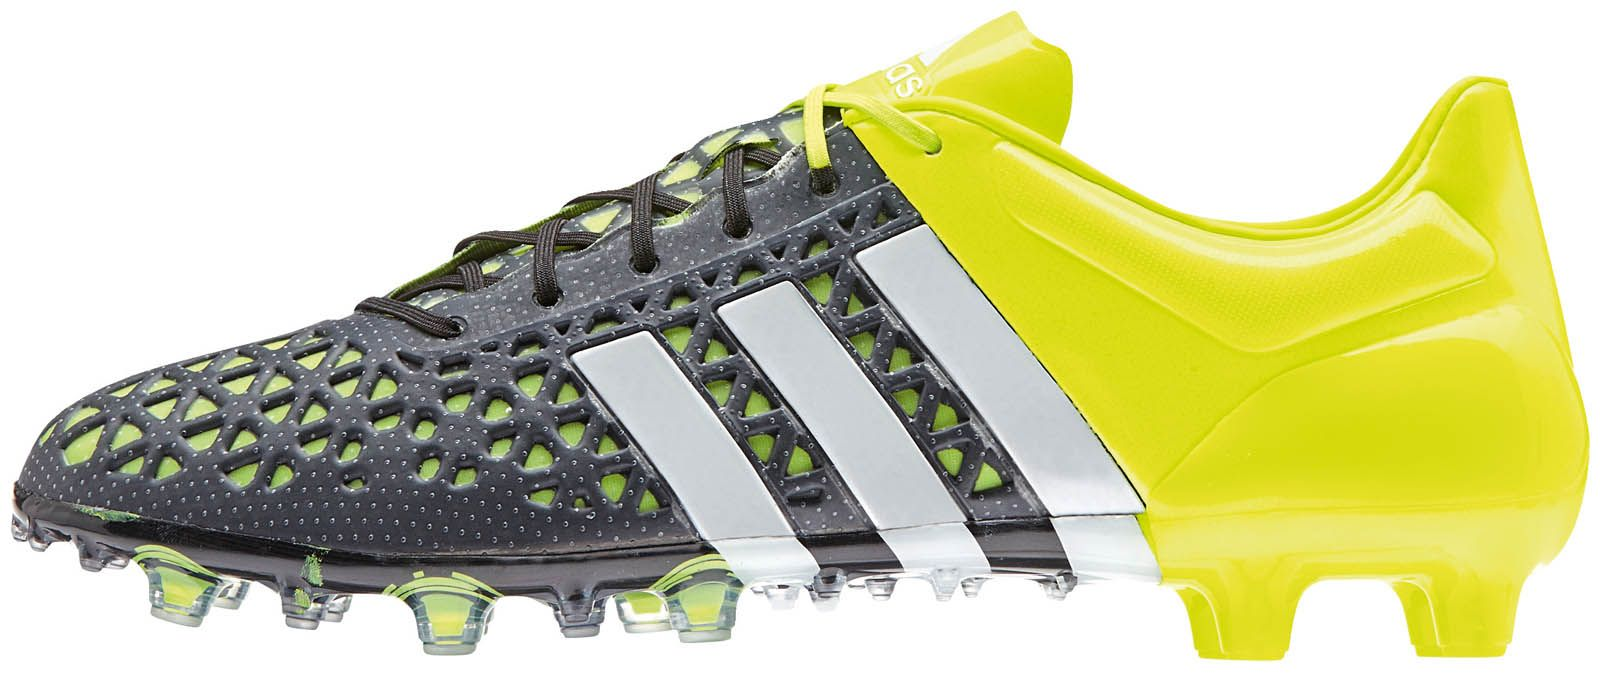 newest dbc83 677de Adidas Ace 15.1 2015-2016 Football Boot